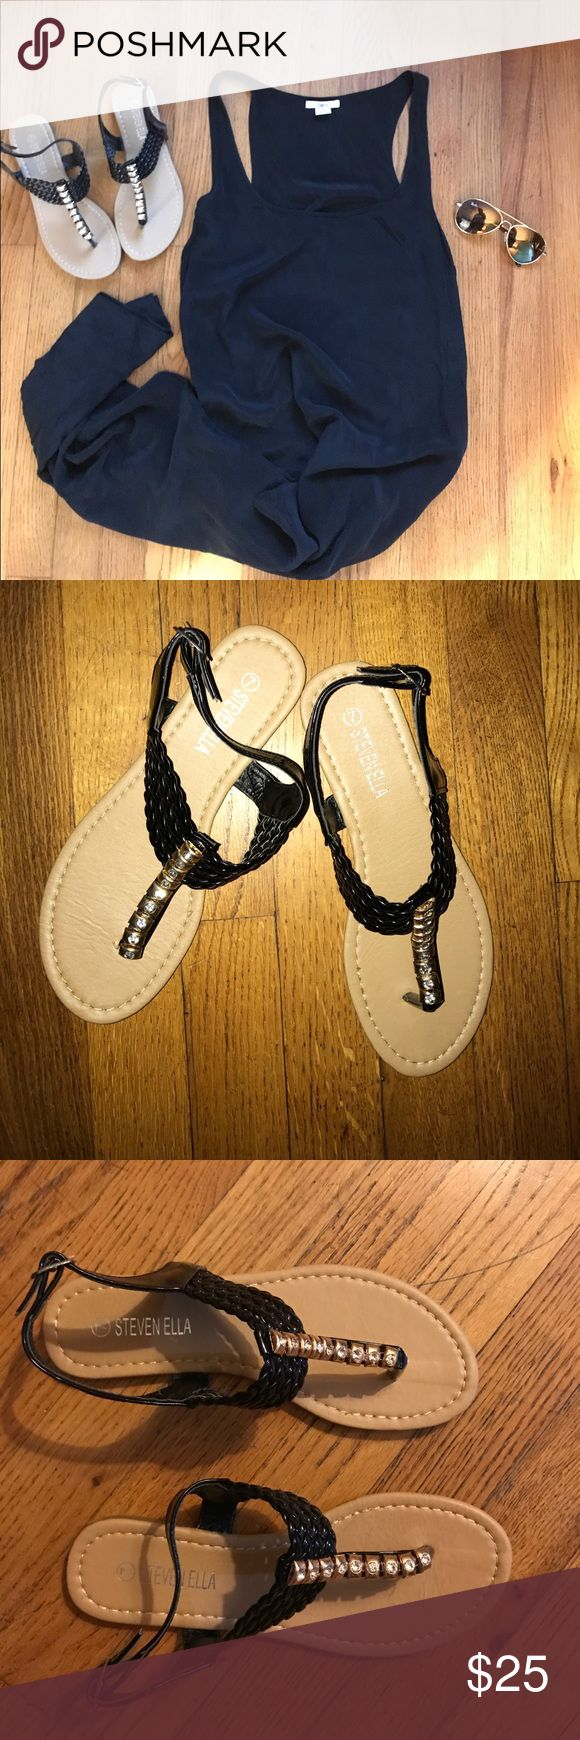 {Steven Ella} Diamond Patent Leather Sandals [7] Diamond Studded Patent Leather Sandals. Size: 7. Brand New In Box. Super Cute! Great with shorts or a maxi! Free with any $75.00+ bundle ❤️😀❗️ Steven Ella Shoes Sandals